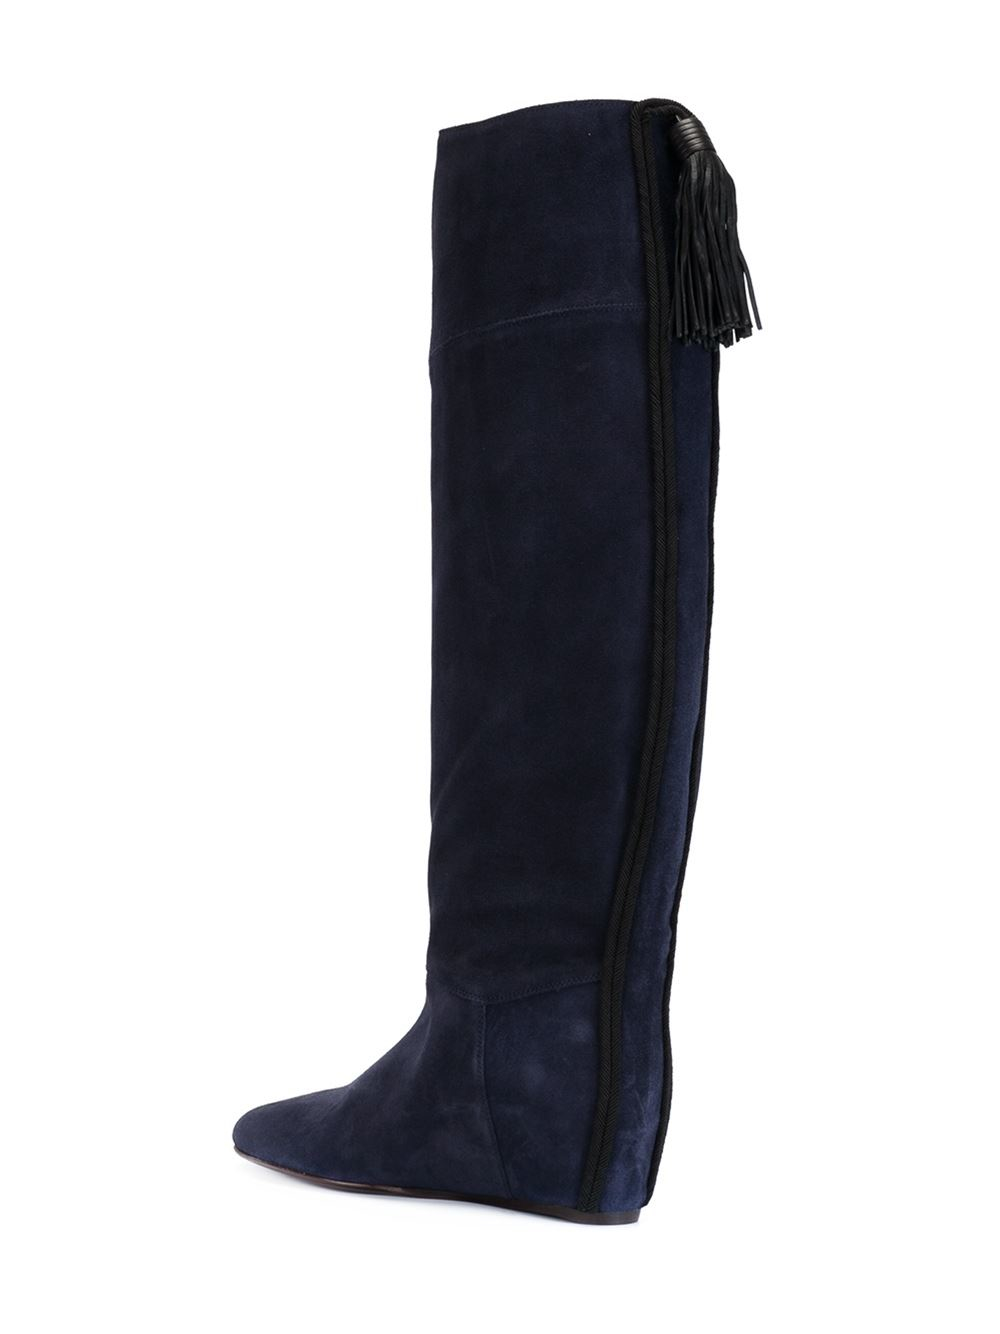 lanvin concealed wedge tassel boots in blue lyst